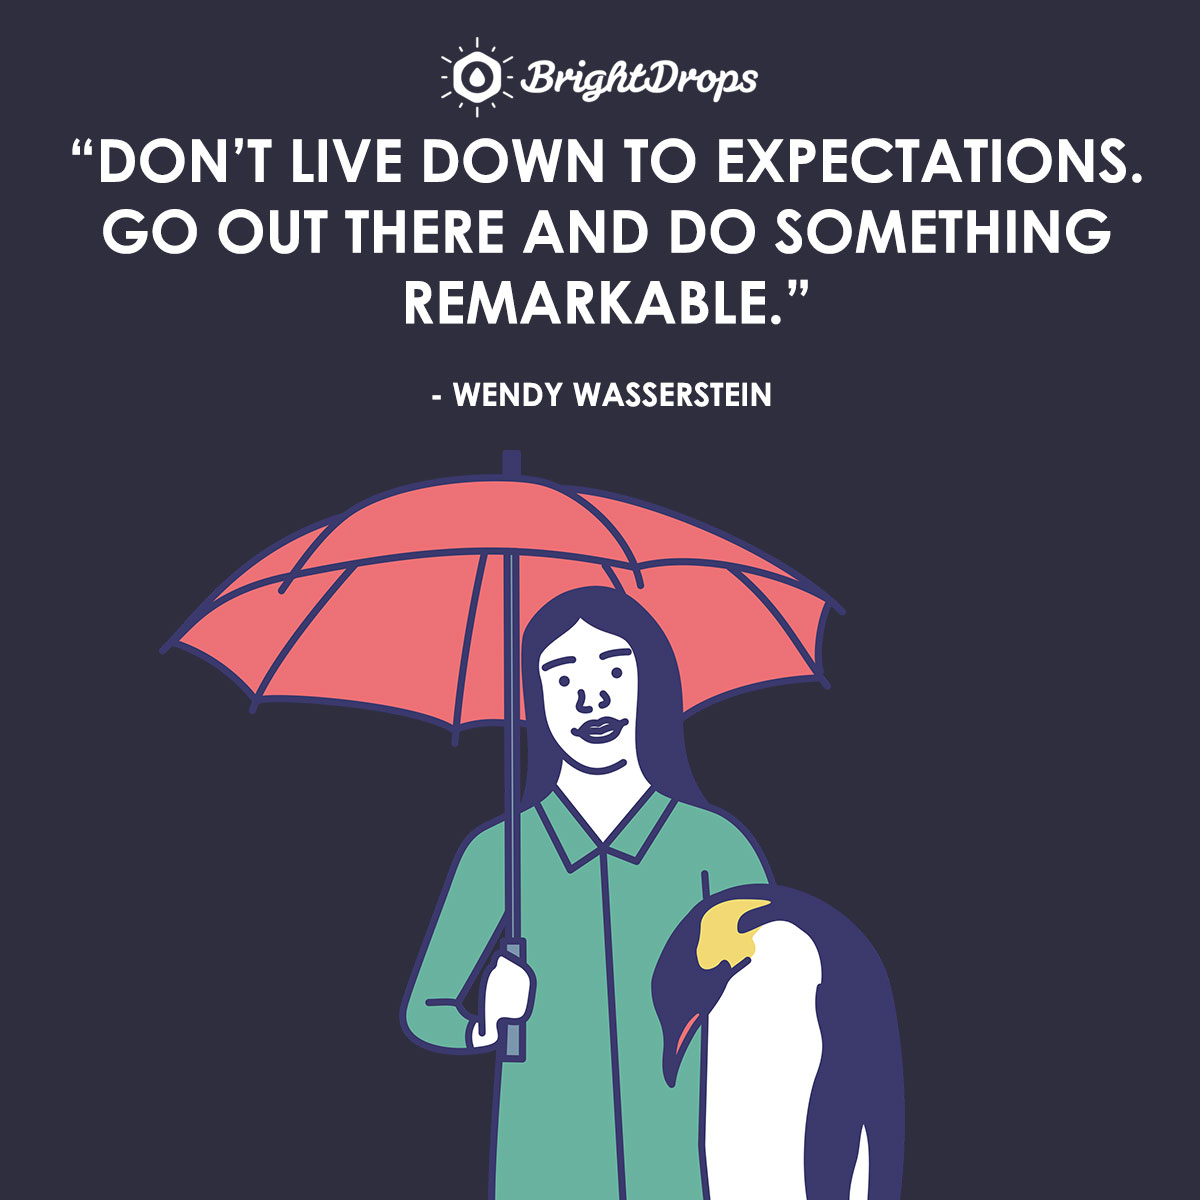 Don't live down to expectations. Go out there and do something remarkable. - Wendy Wasserstein